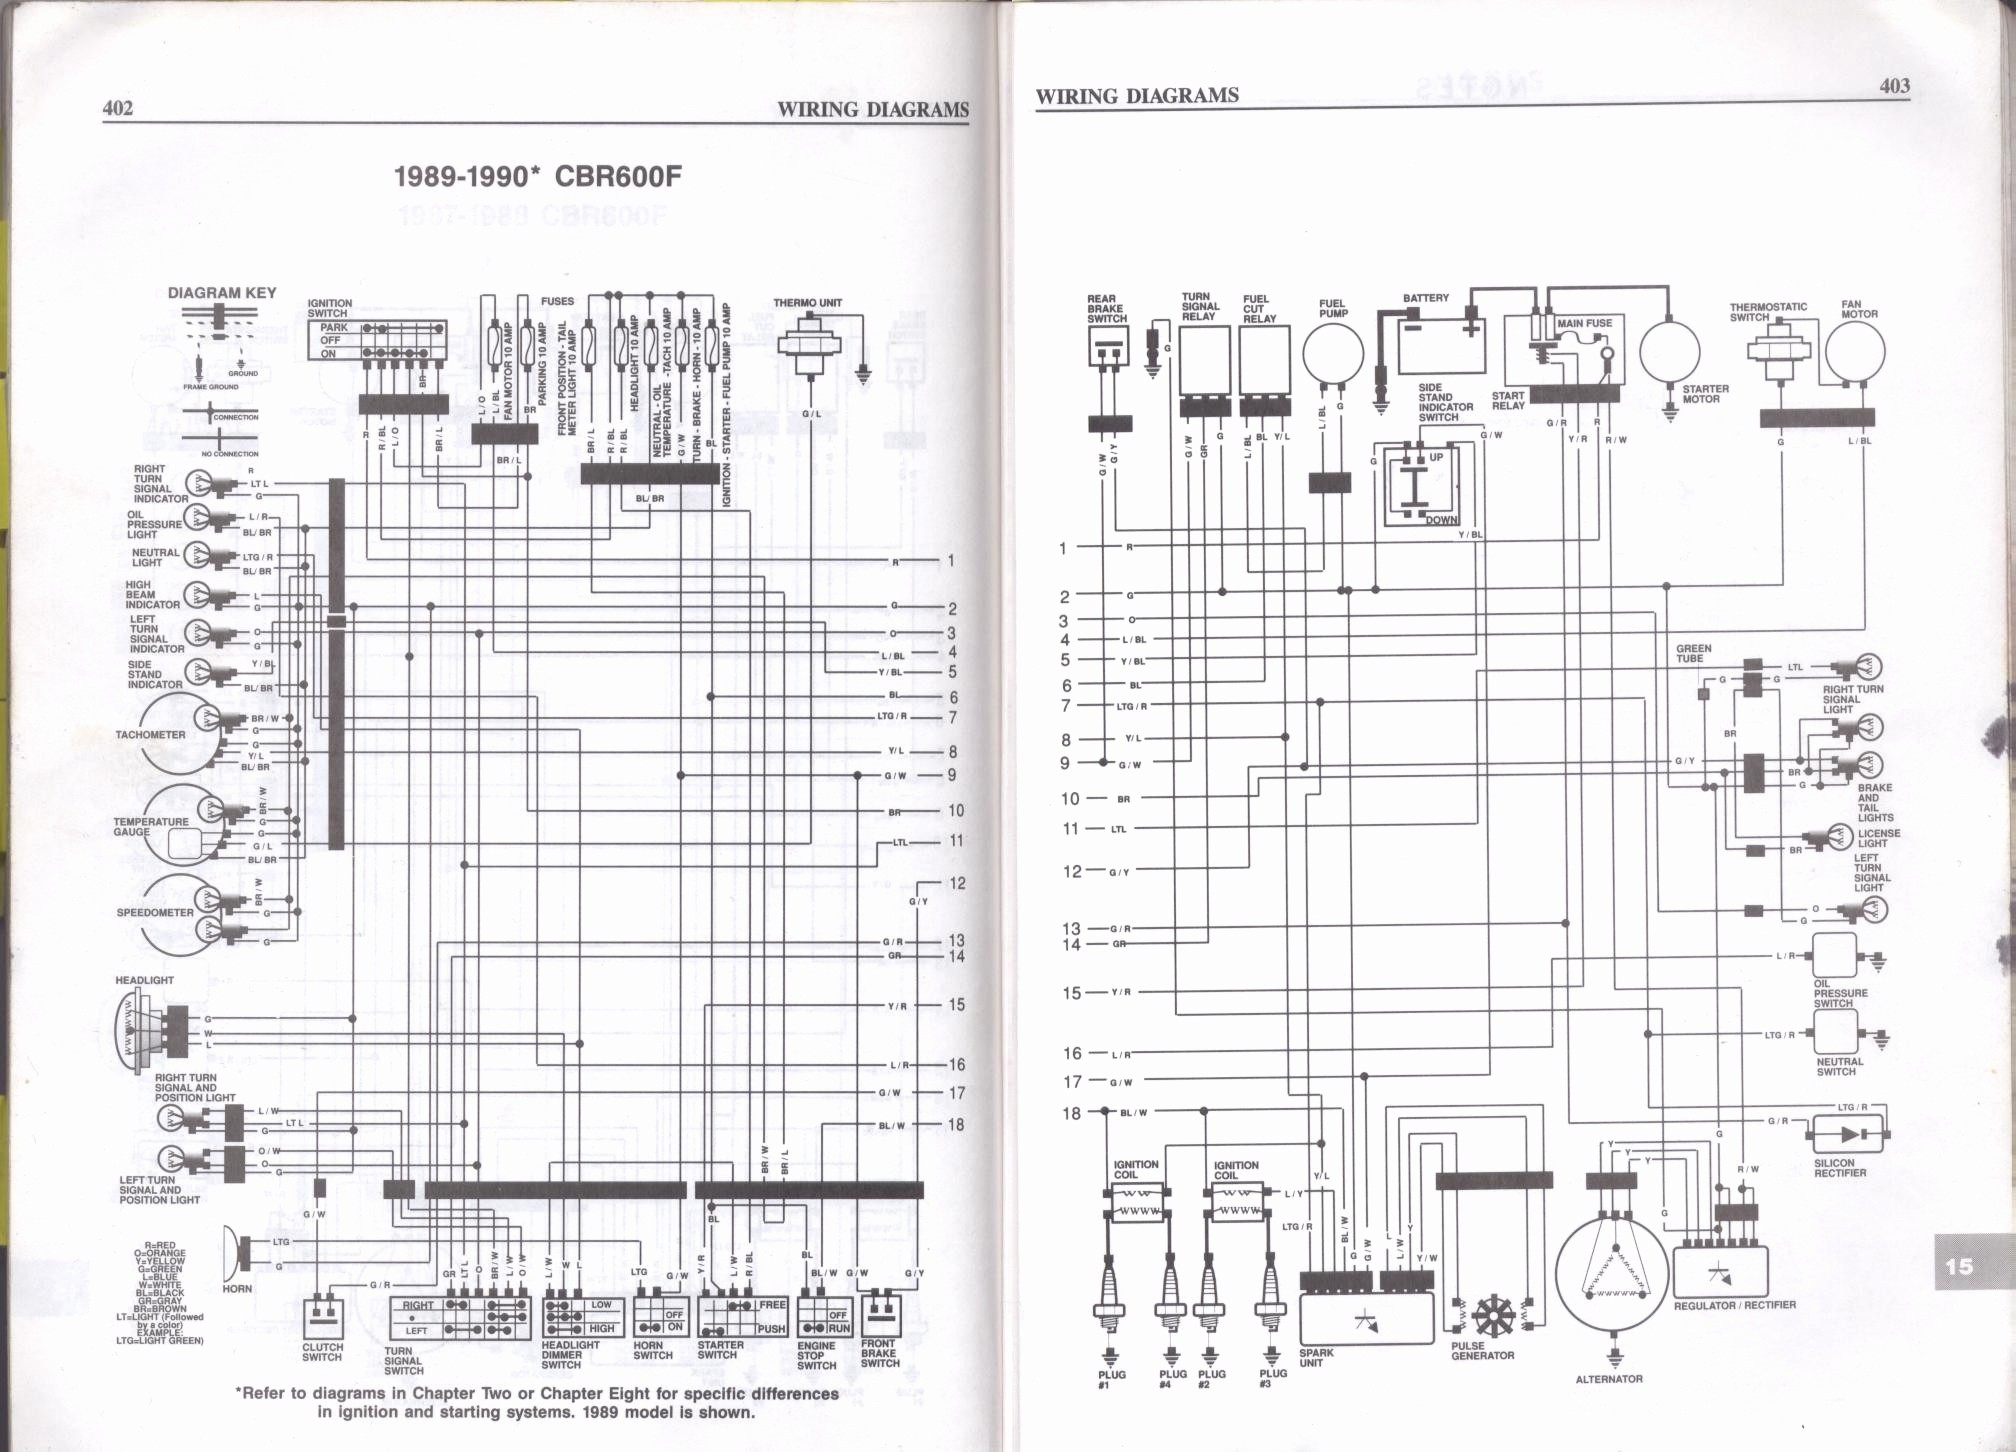 1998 Honda Accord Ignition Wiring Diagram - Wiring Diagram